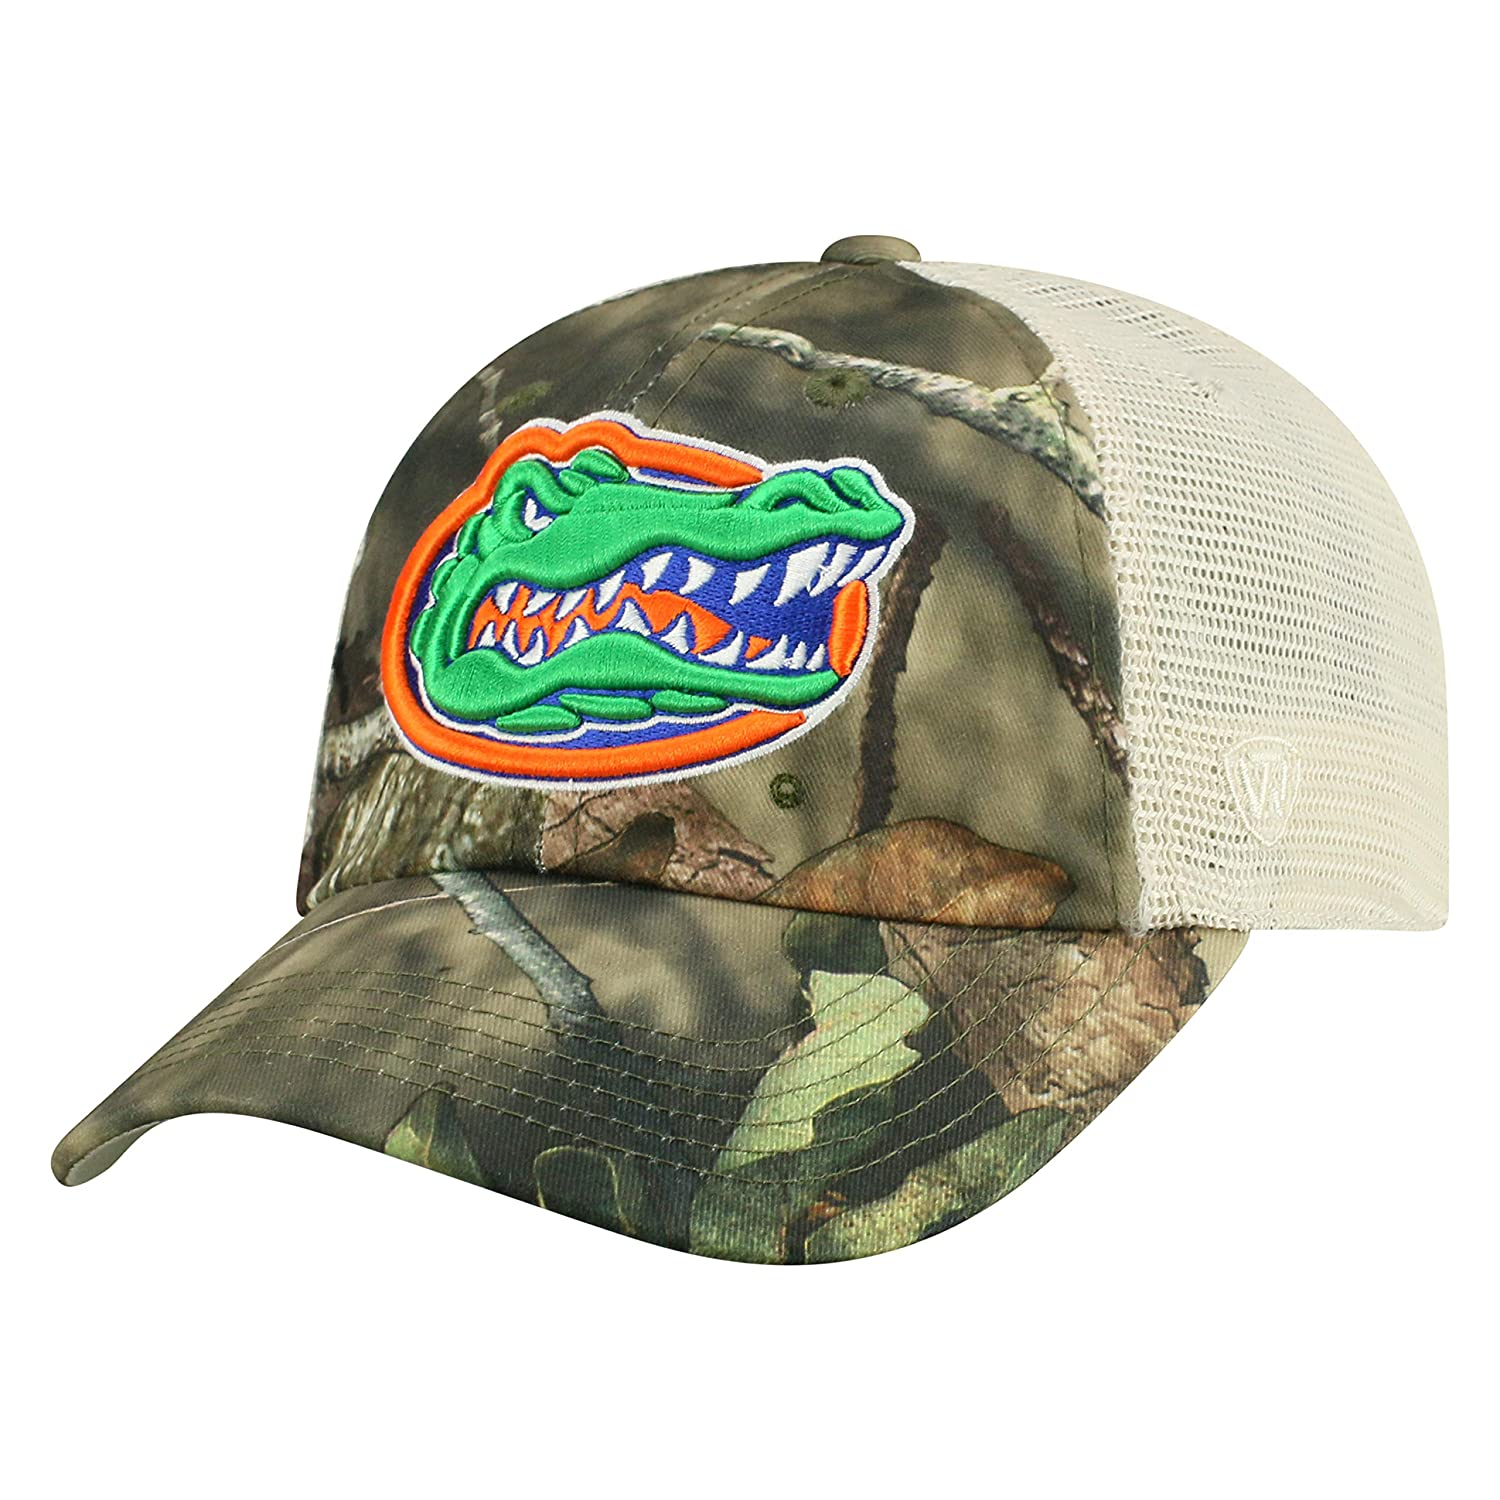 17437ff10af Amazon.com   Top of the World Florida Gators Official NCAA Adjustable  Remote Mossy Oak and Mesh Hat Cap 368900   Sports   Outdoors